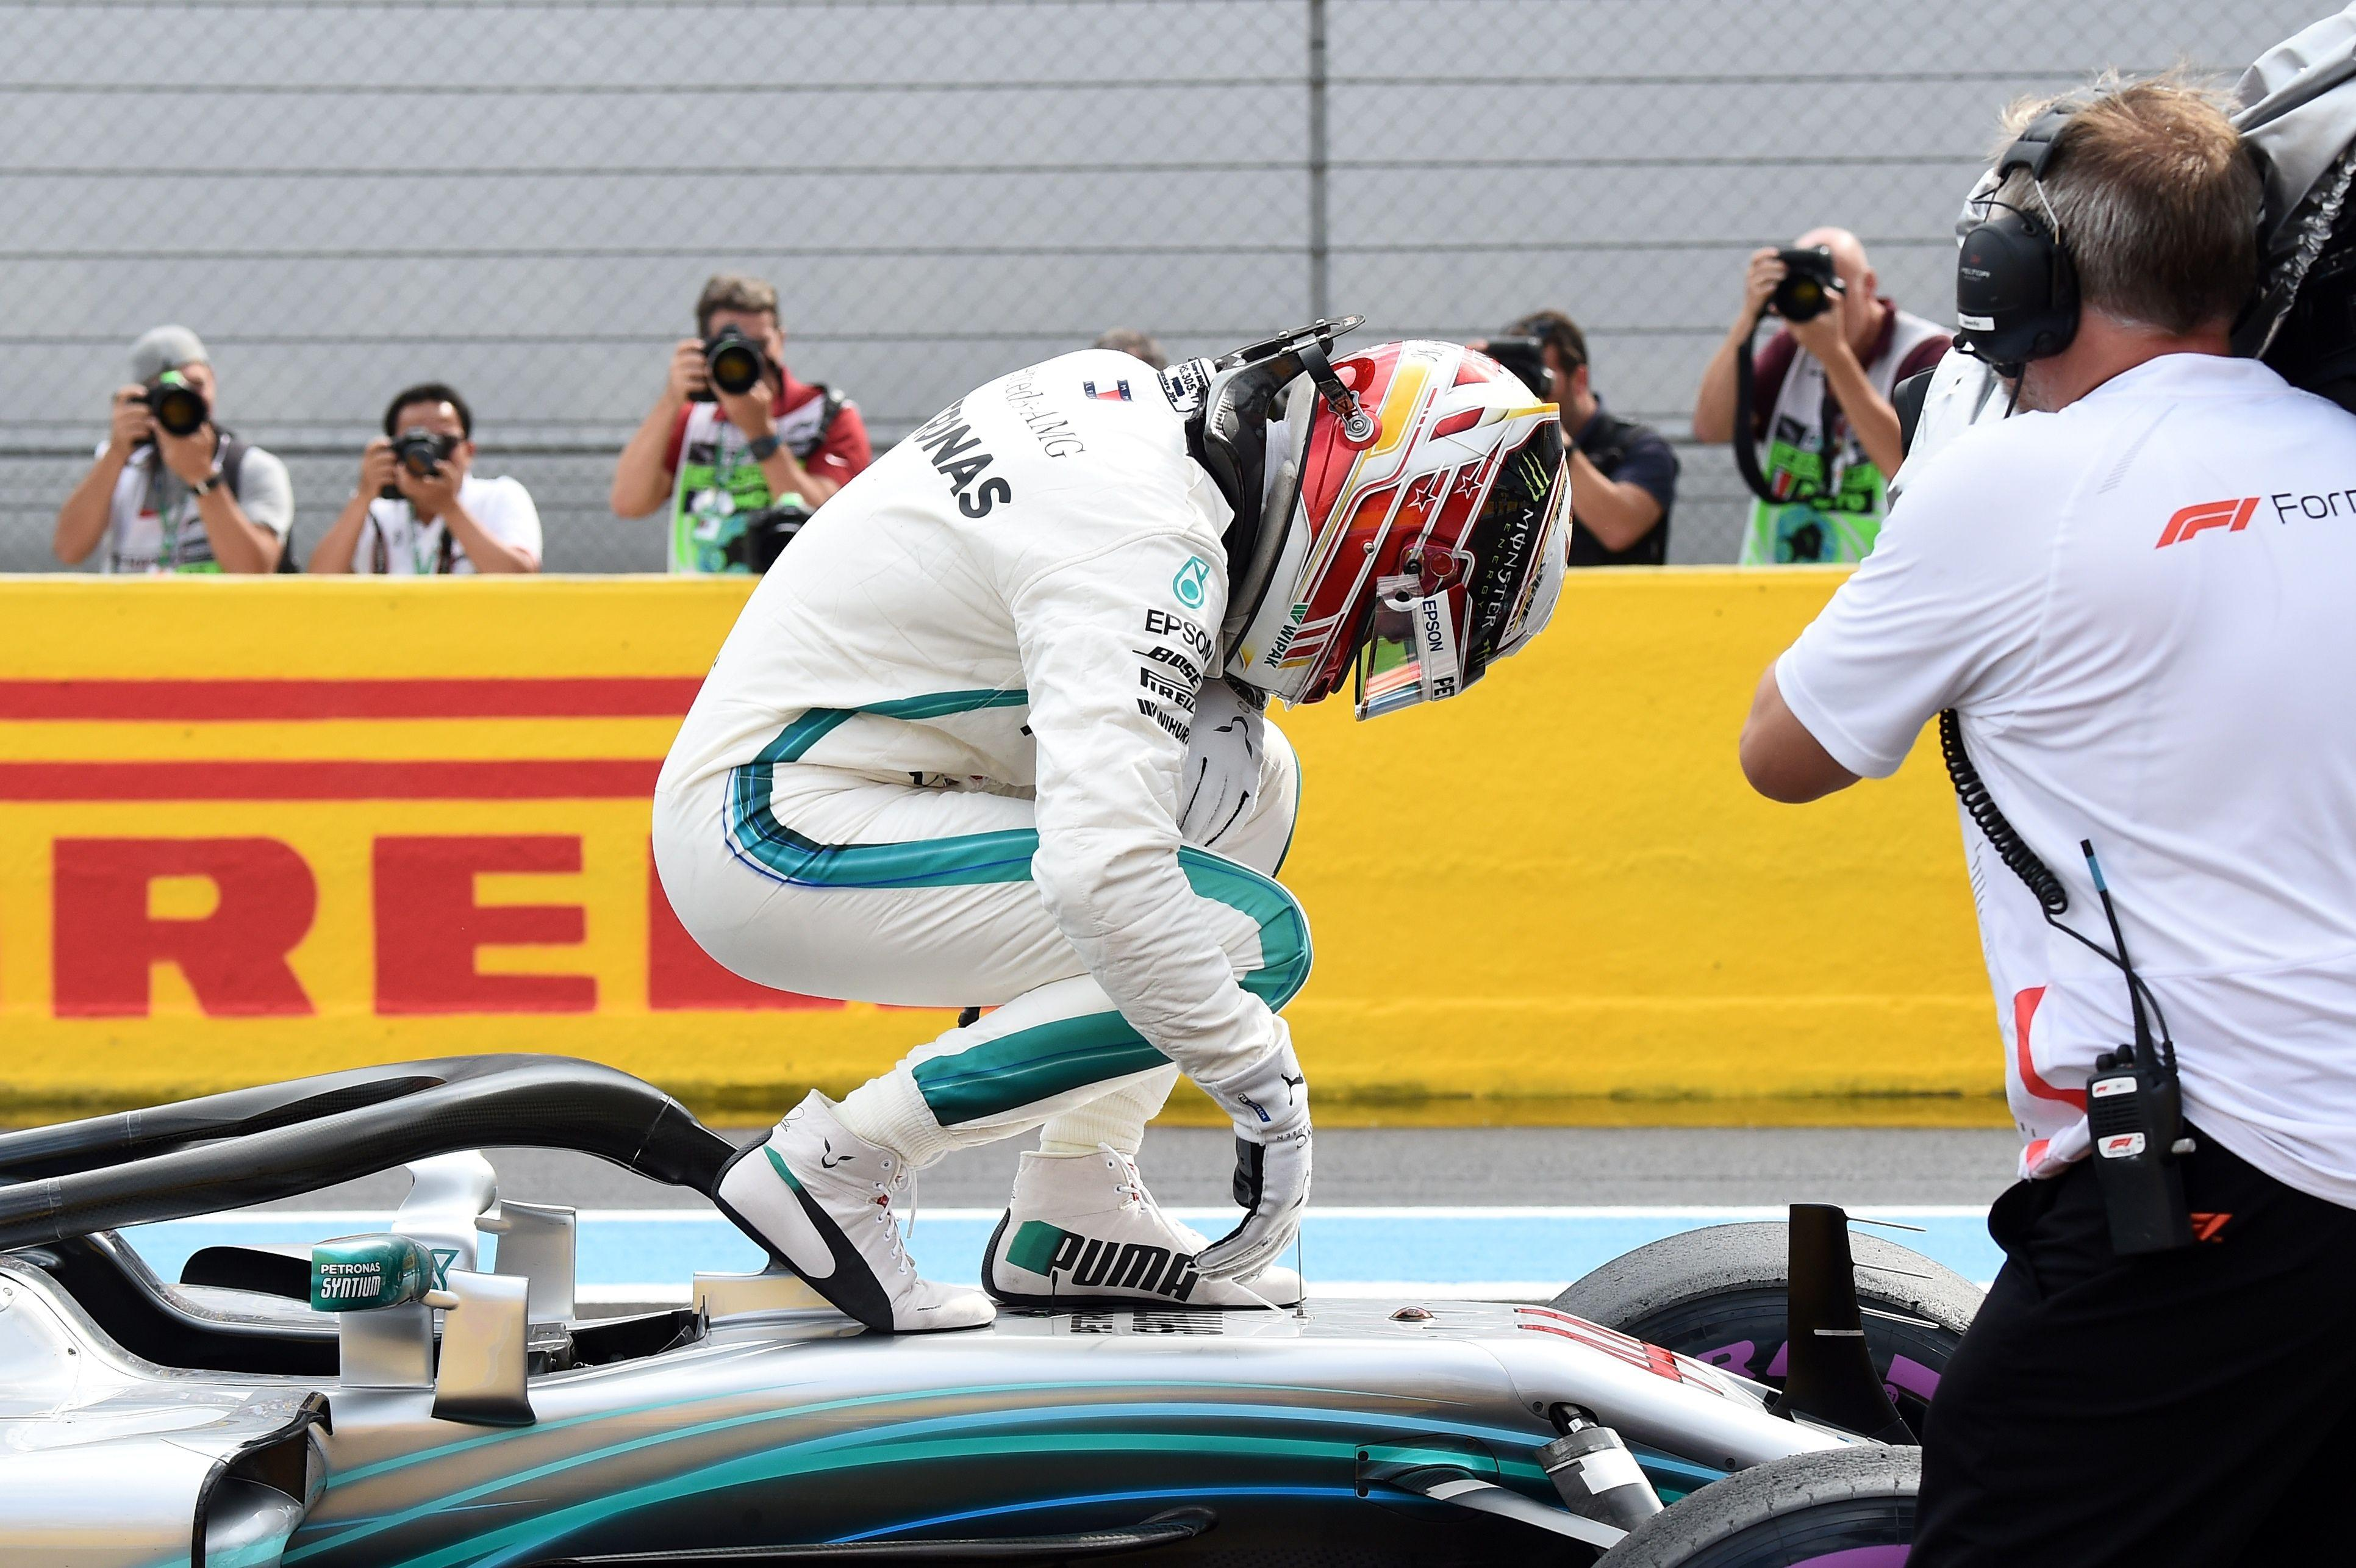 Lewis Hamilton stands on his car as he celebrates securing pole position